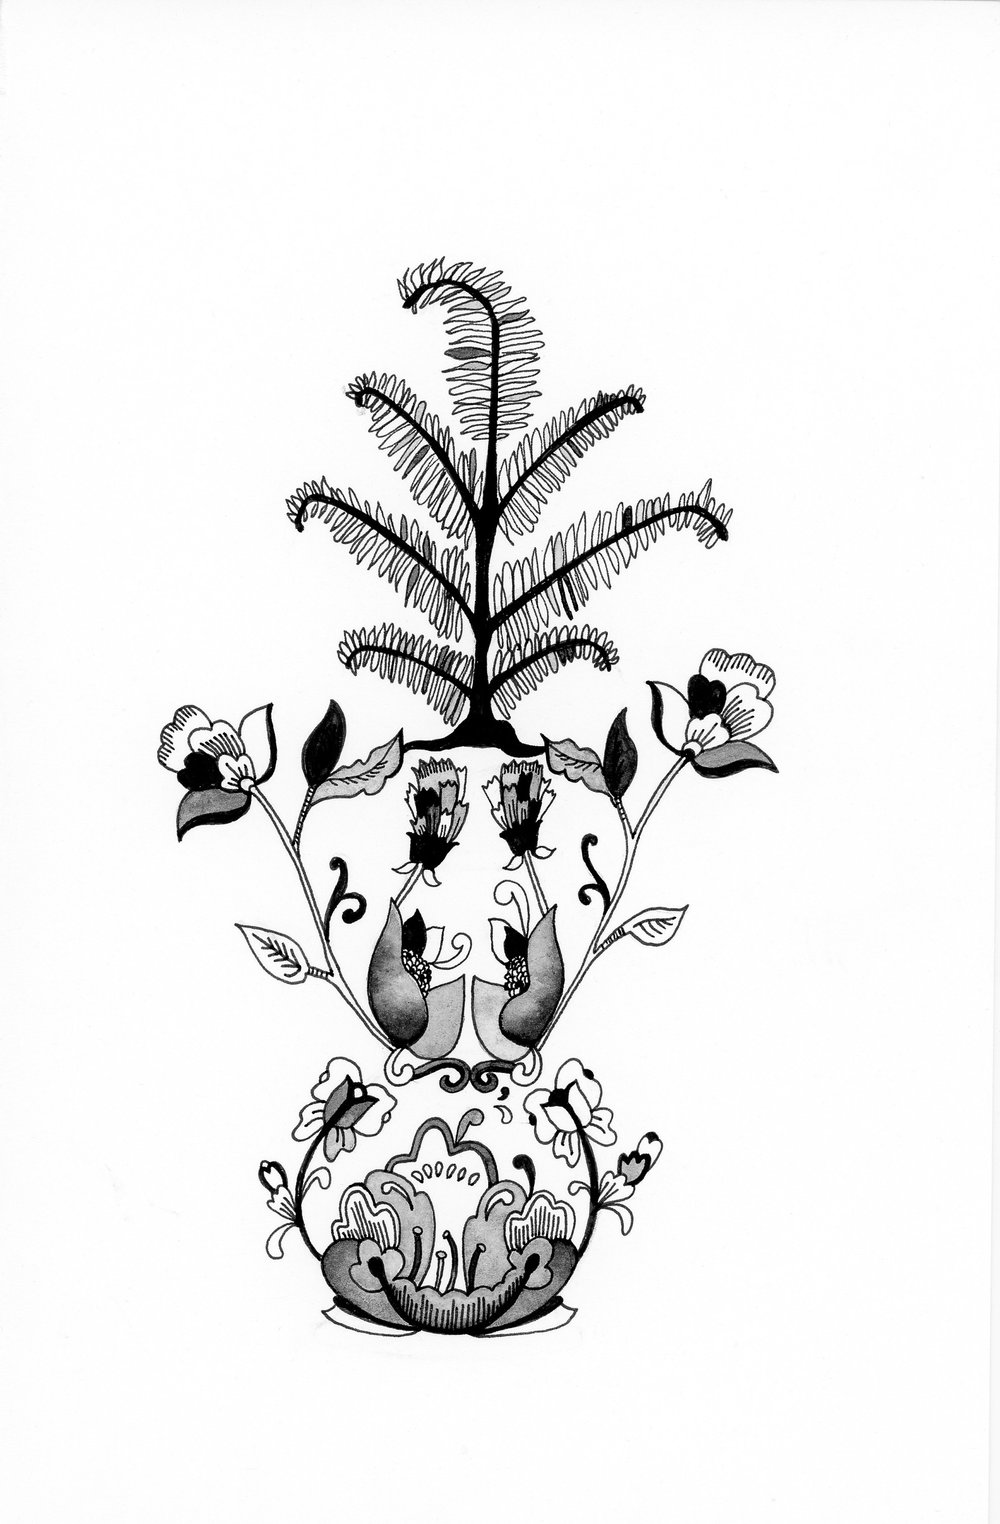 Printers Ornaments   4.5x6 inches, pen on paper